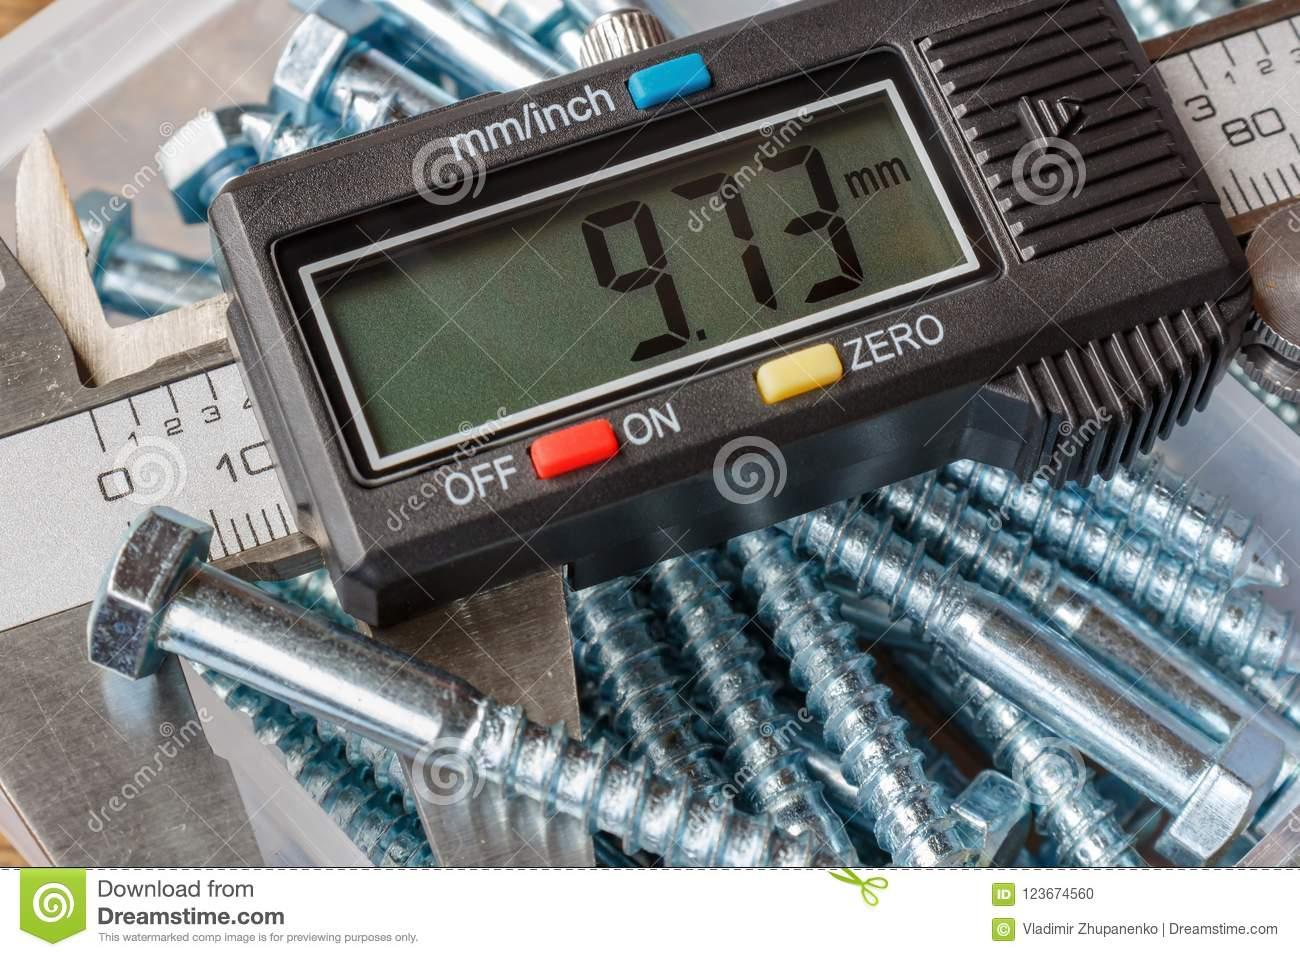 Digital electronic caliper with hexagon head bolts on a background of storage box closeup